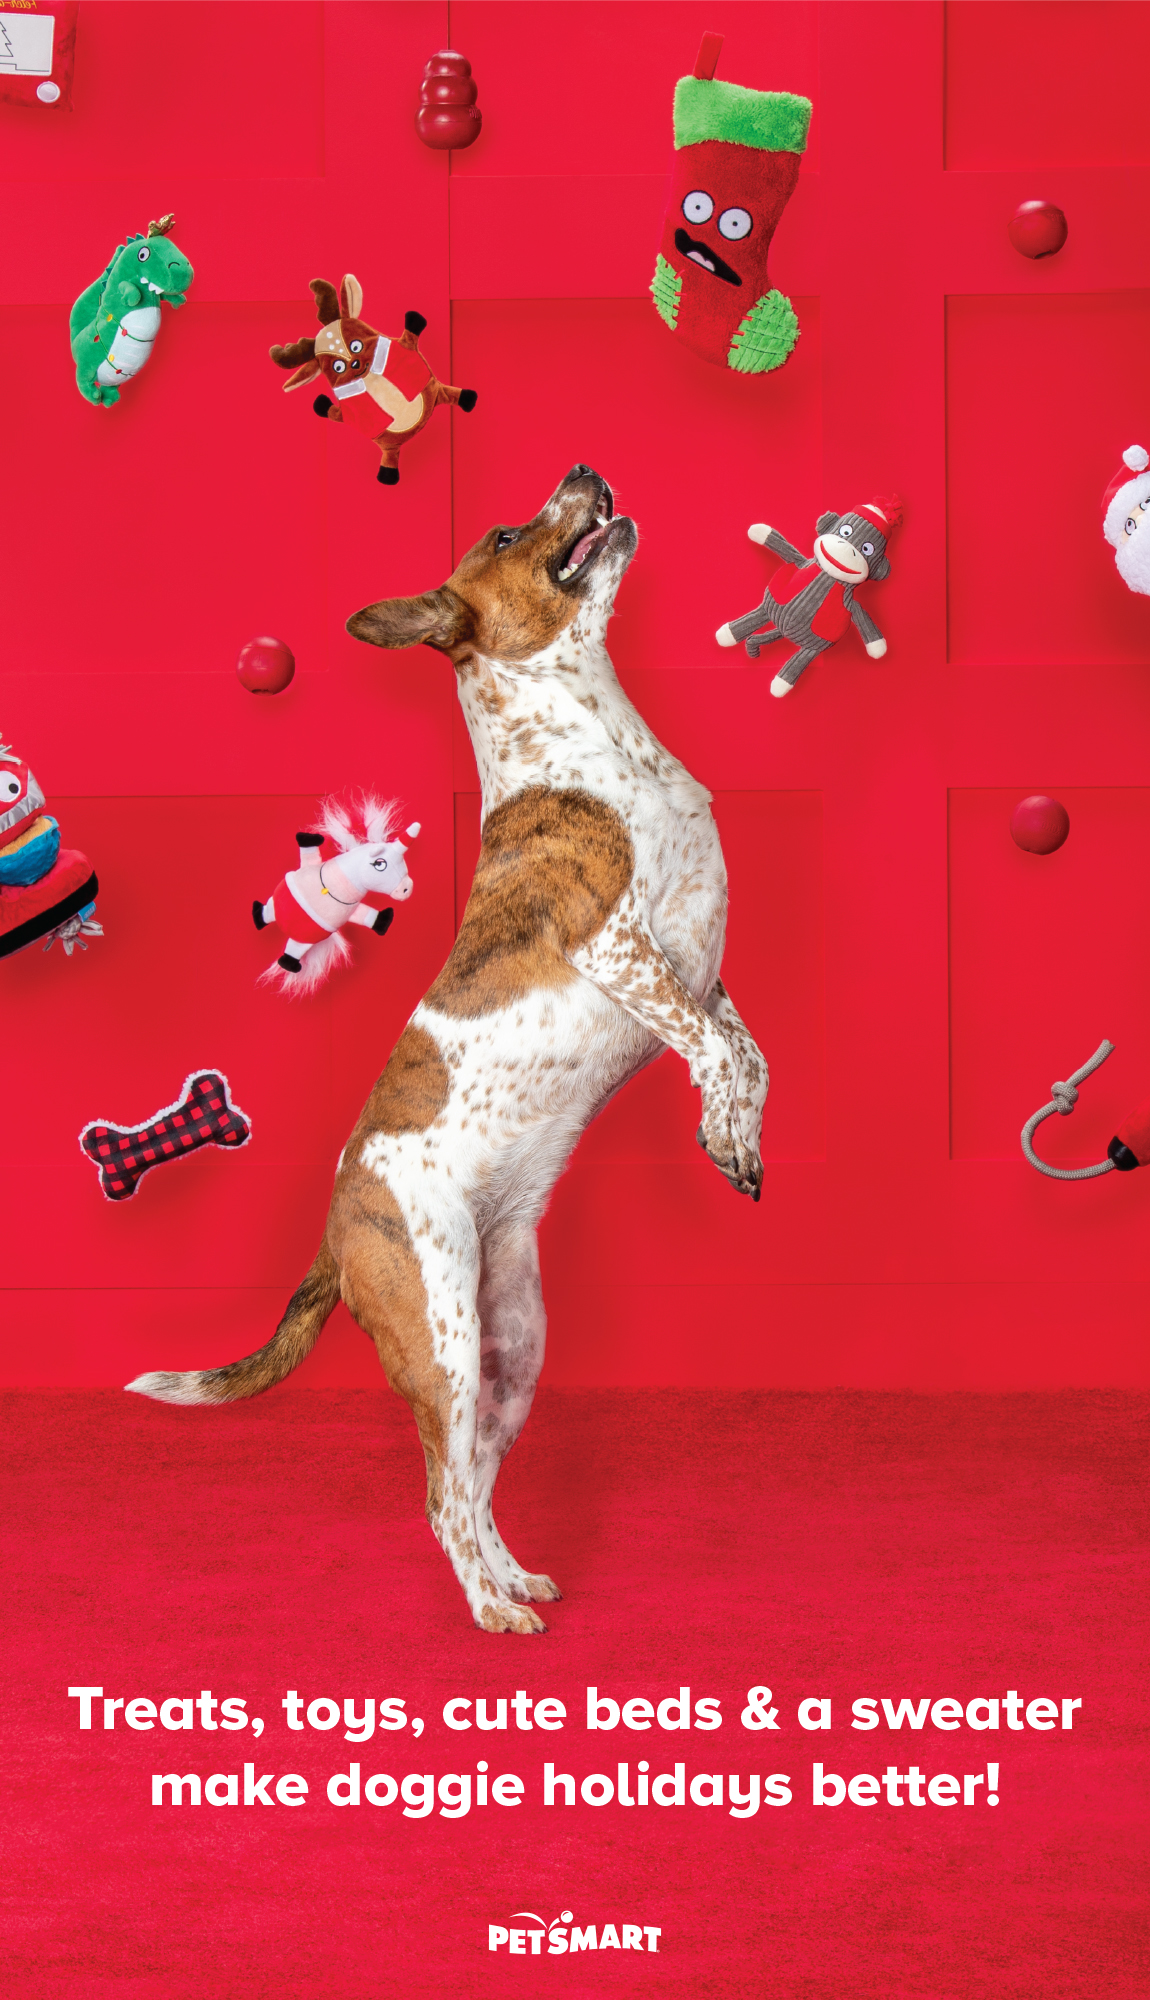 Treats, toys, cute beds & a sweater make doggie holidays better!